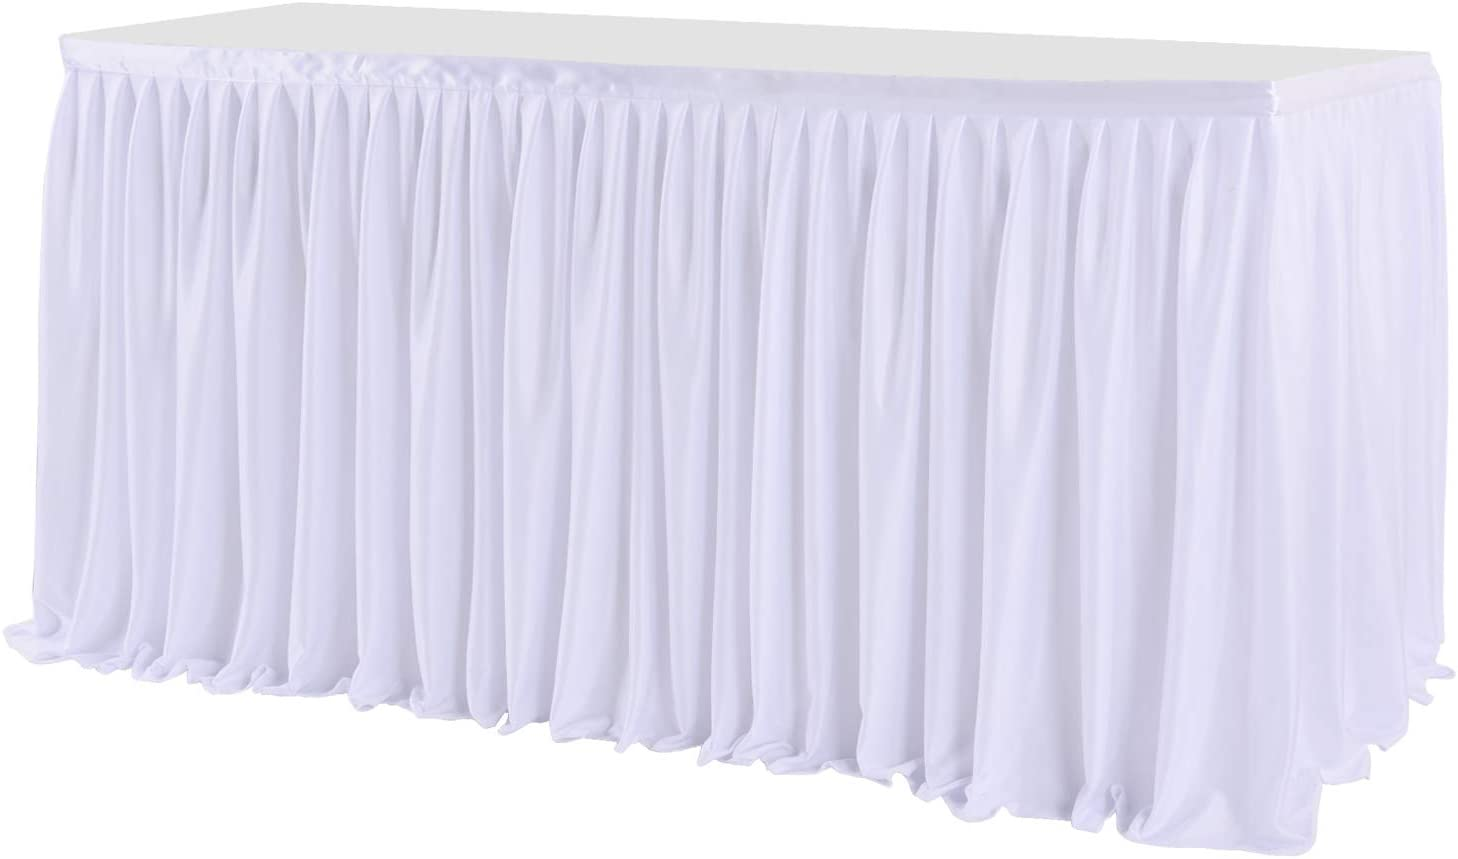 Little Funny 6ft White Polyester Pleated Table Skirts for Wedding, Bridal Shower, Baby Shower, Banquet, Gender Reveal, Party, Table Decorations for Rectangle Tables